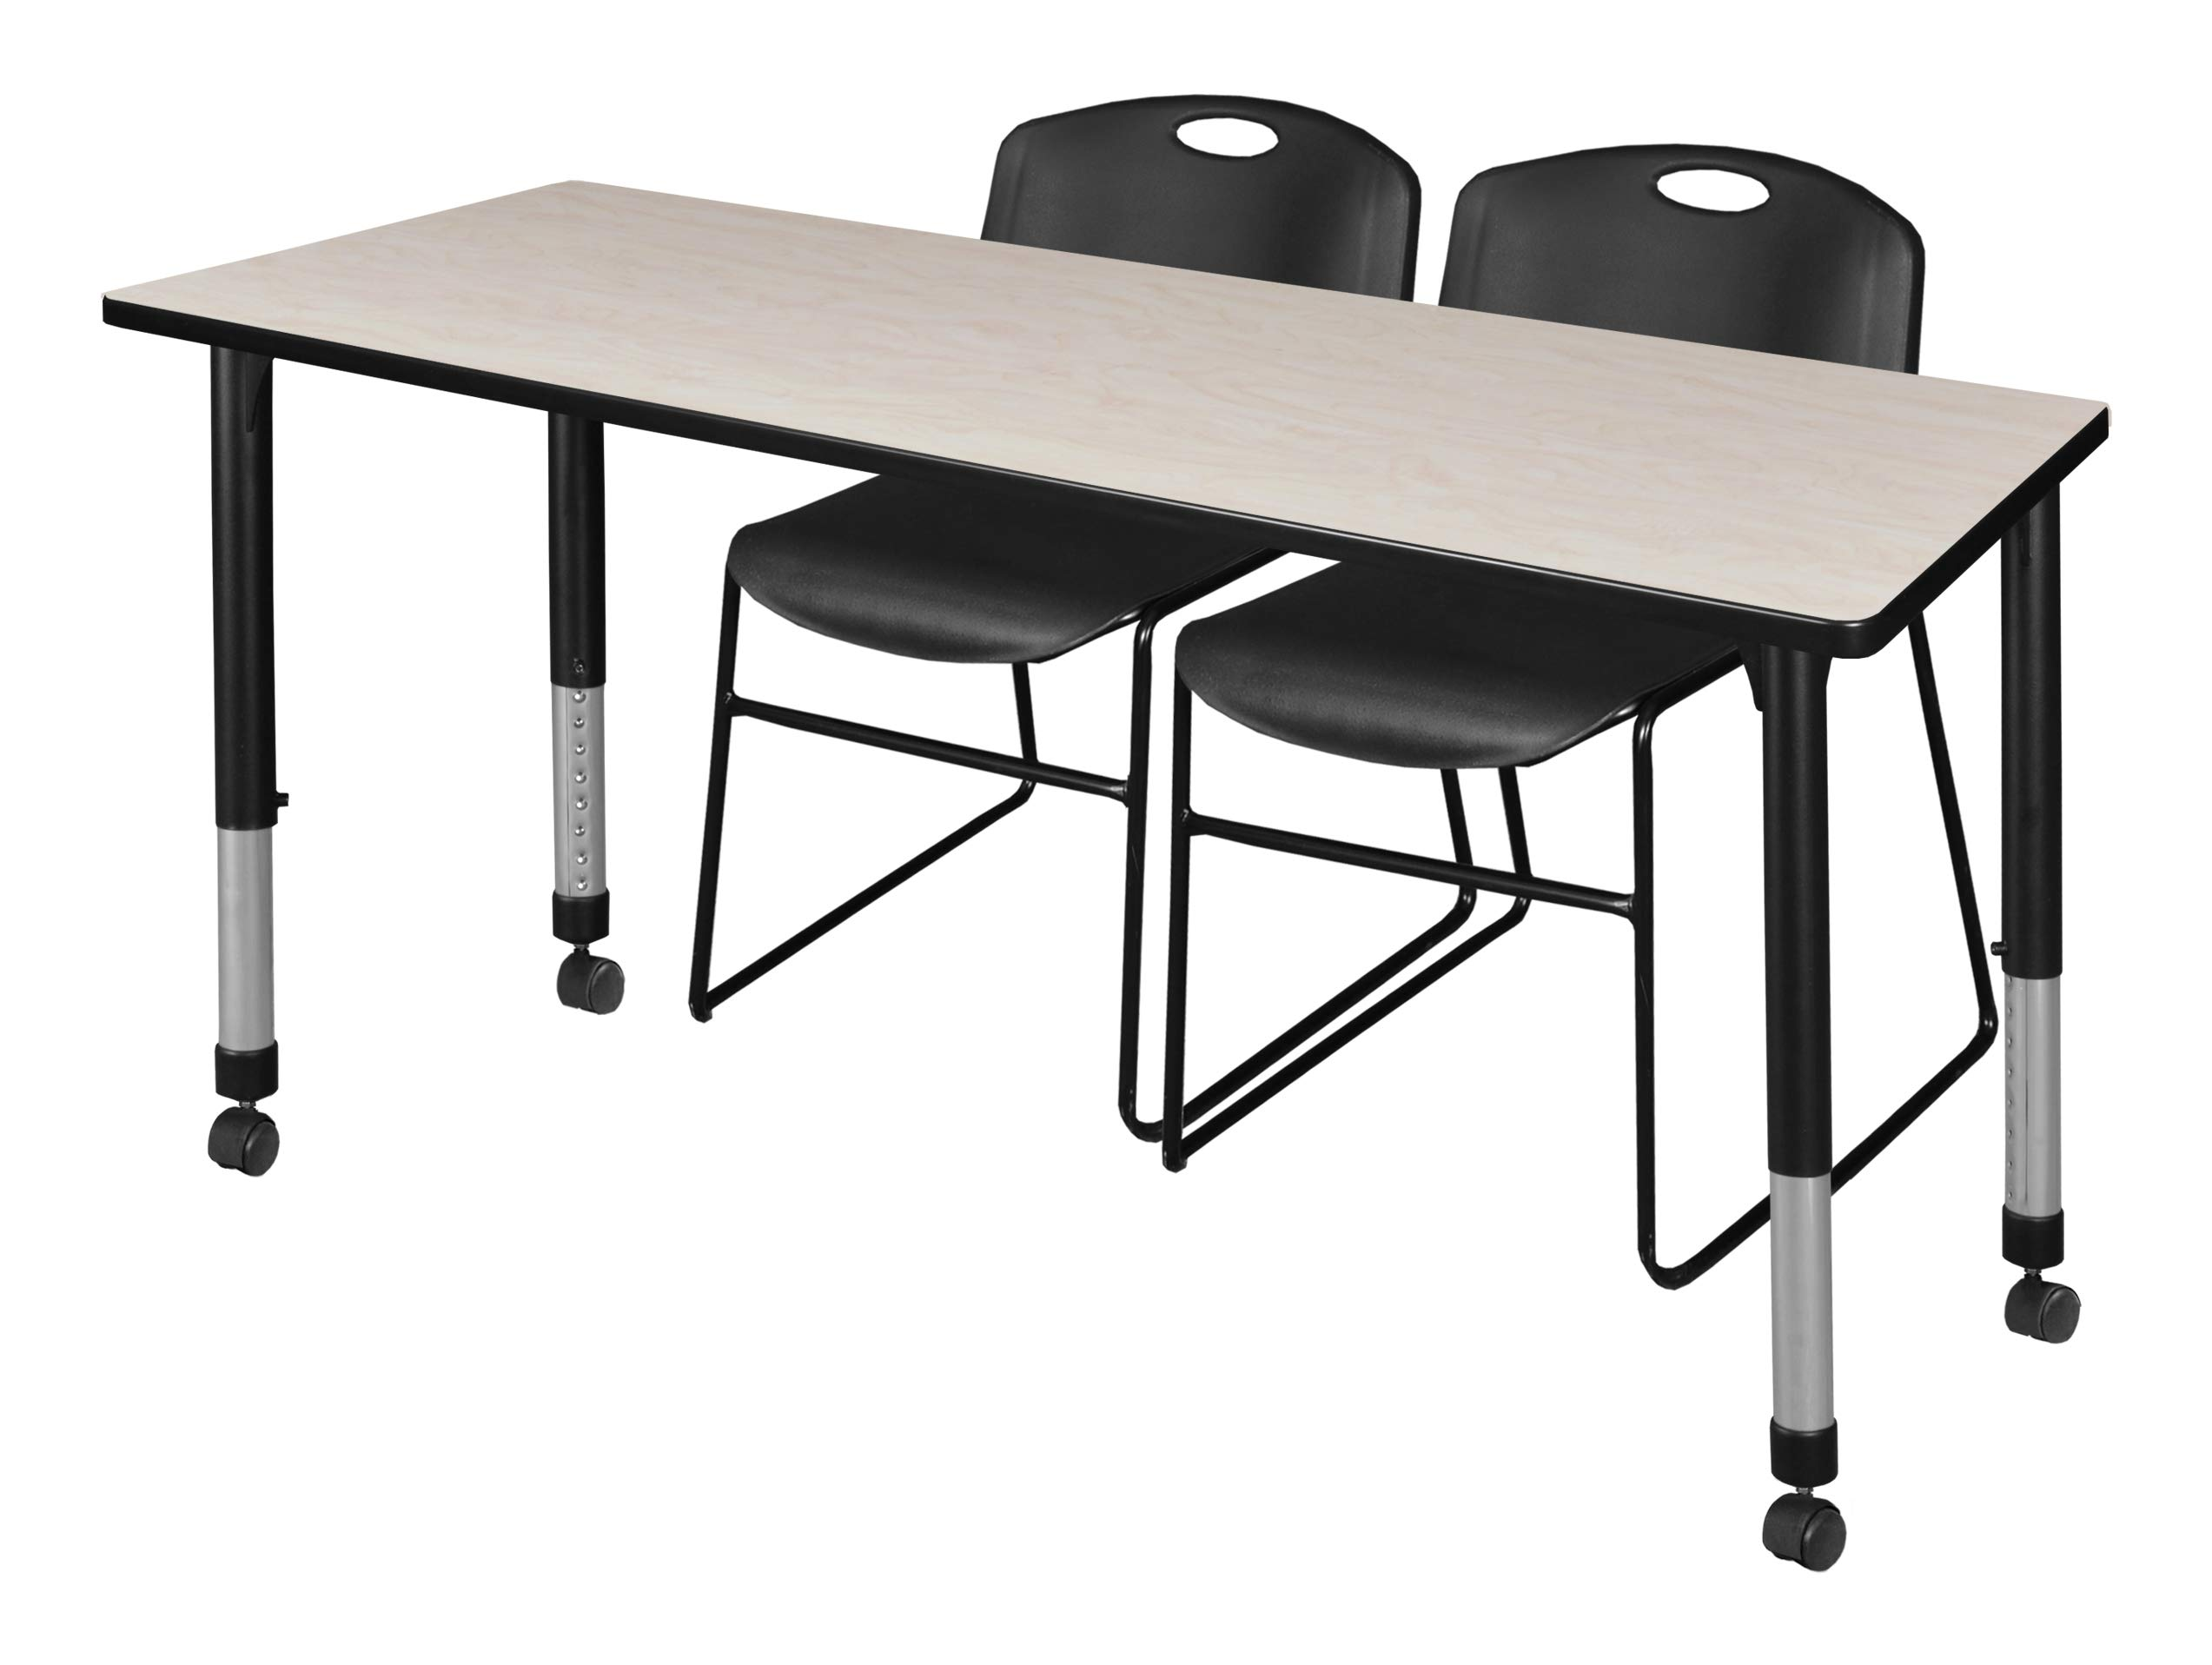 Regency MT7230PLAPCBK44BK Kee Height Adjustable Mobile Classroom Table Set with Two Zeng Chairs, 72'' x 30'', Maple/Black